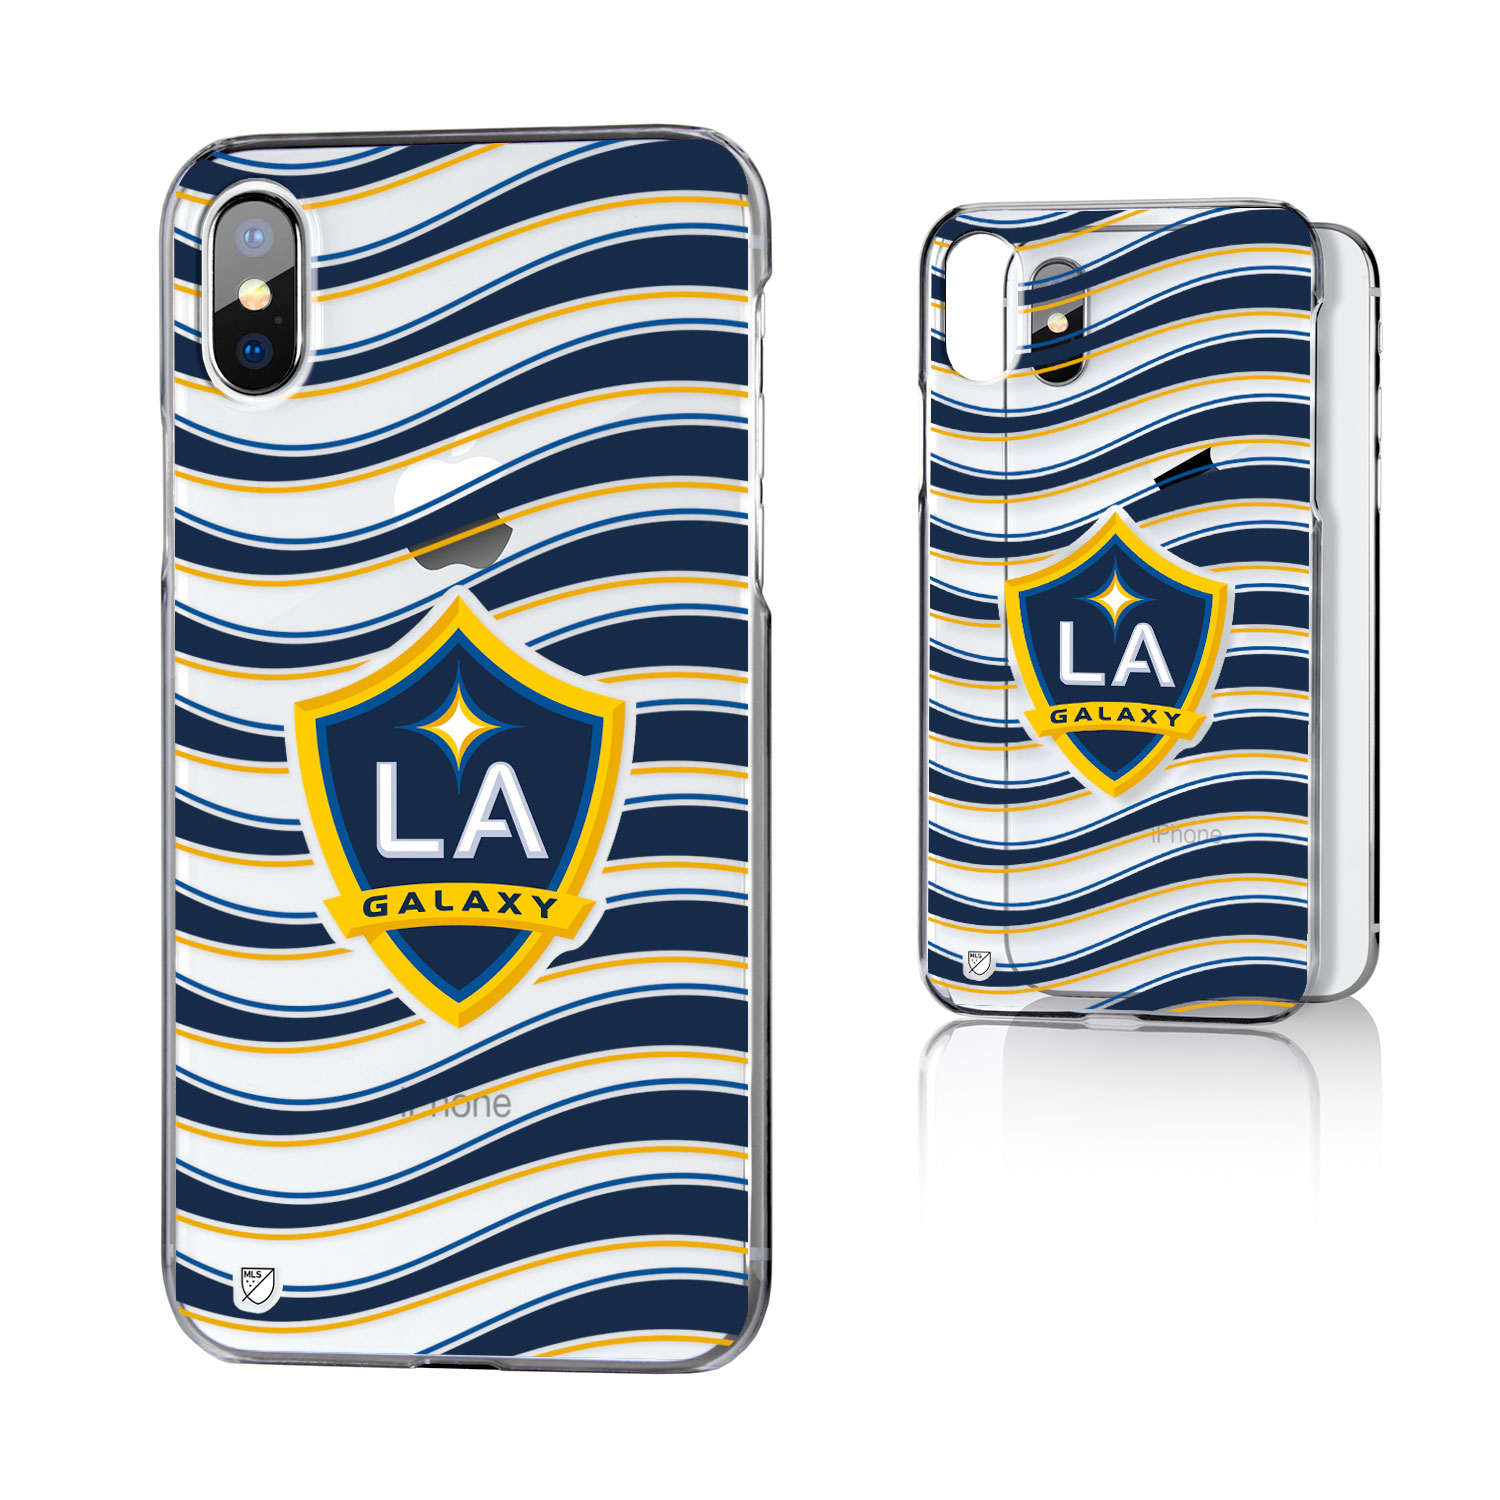 Los Angeles Galaxy GALAXY Wave Clear Case for iPhone X